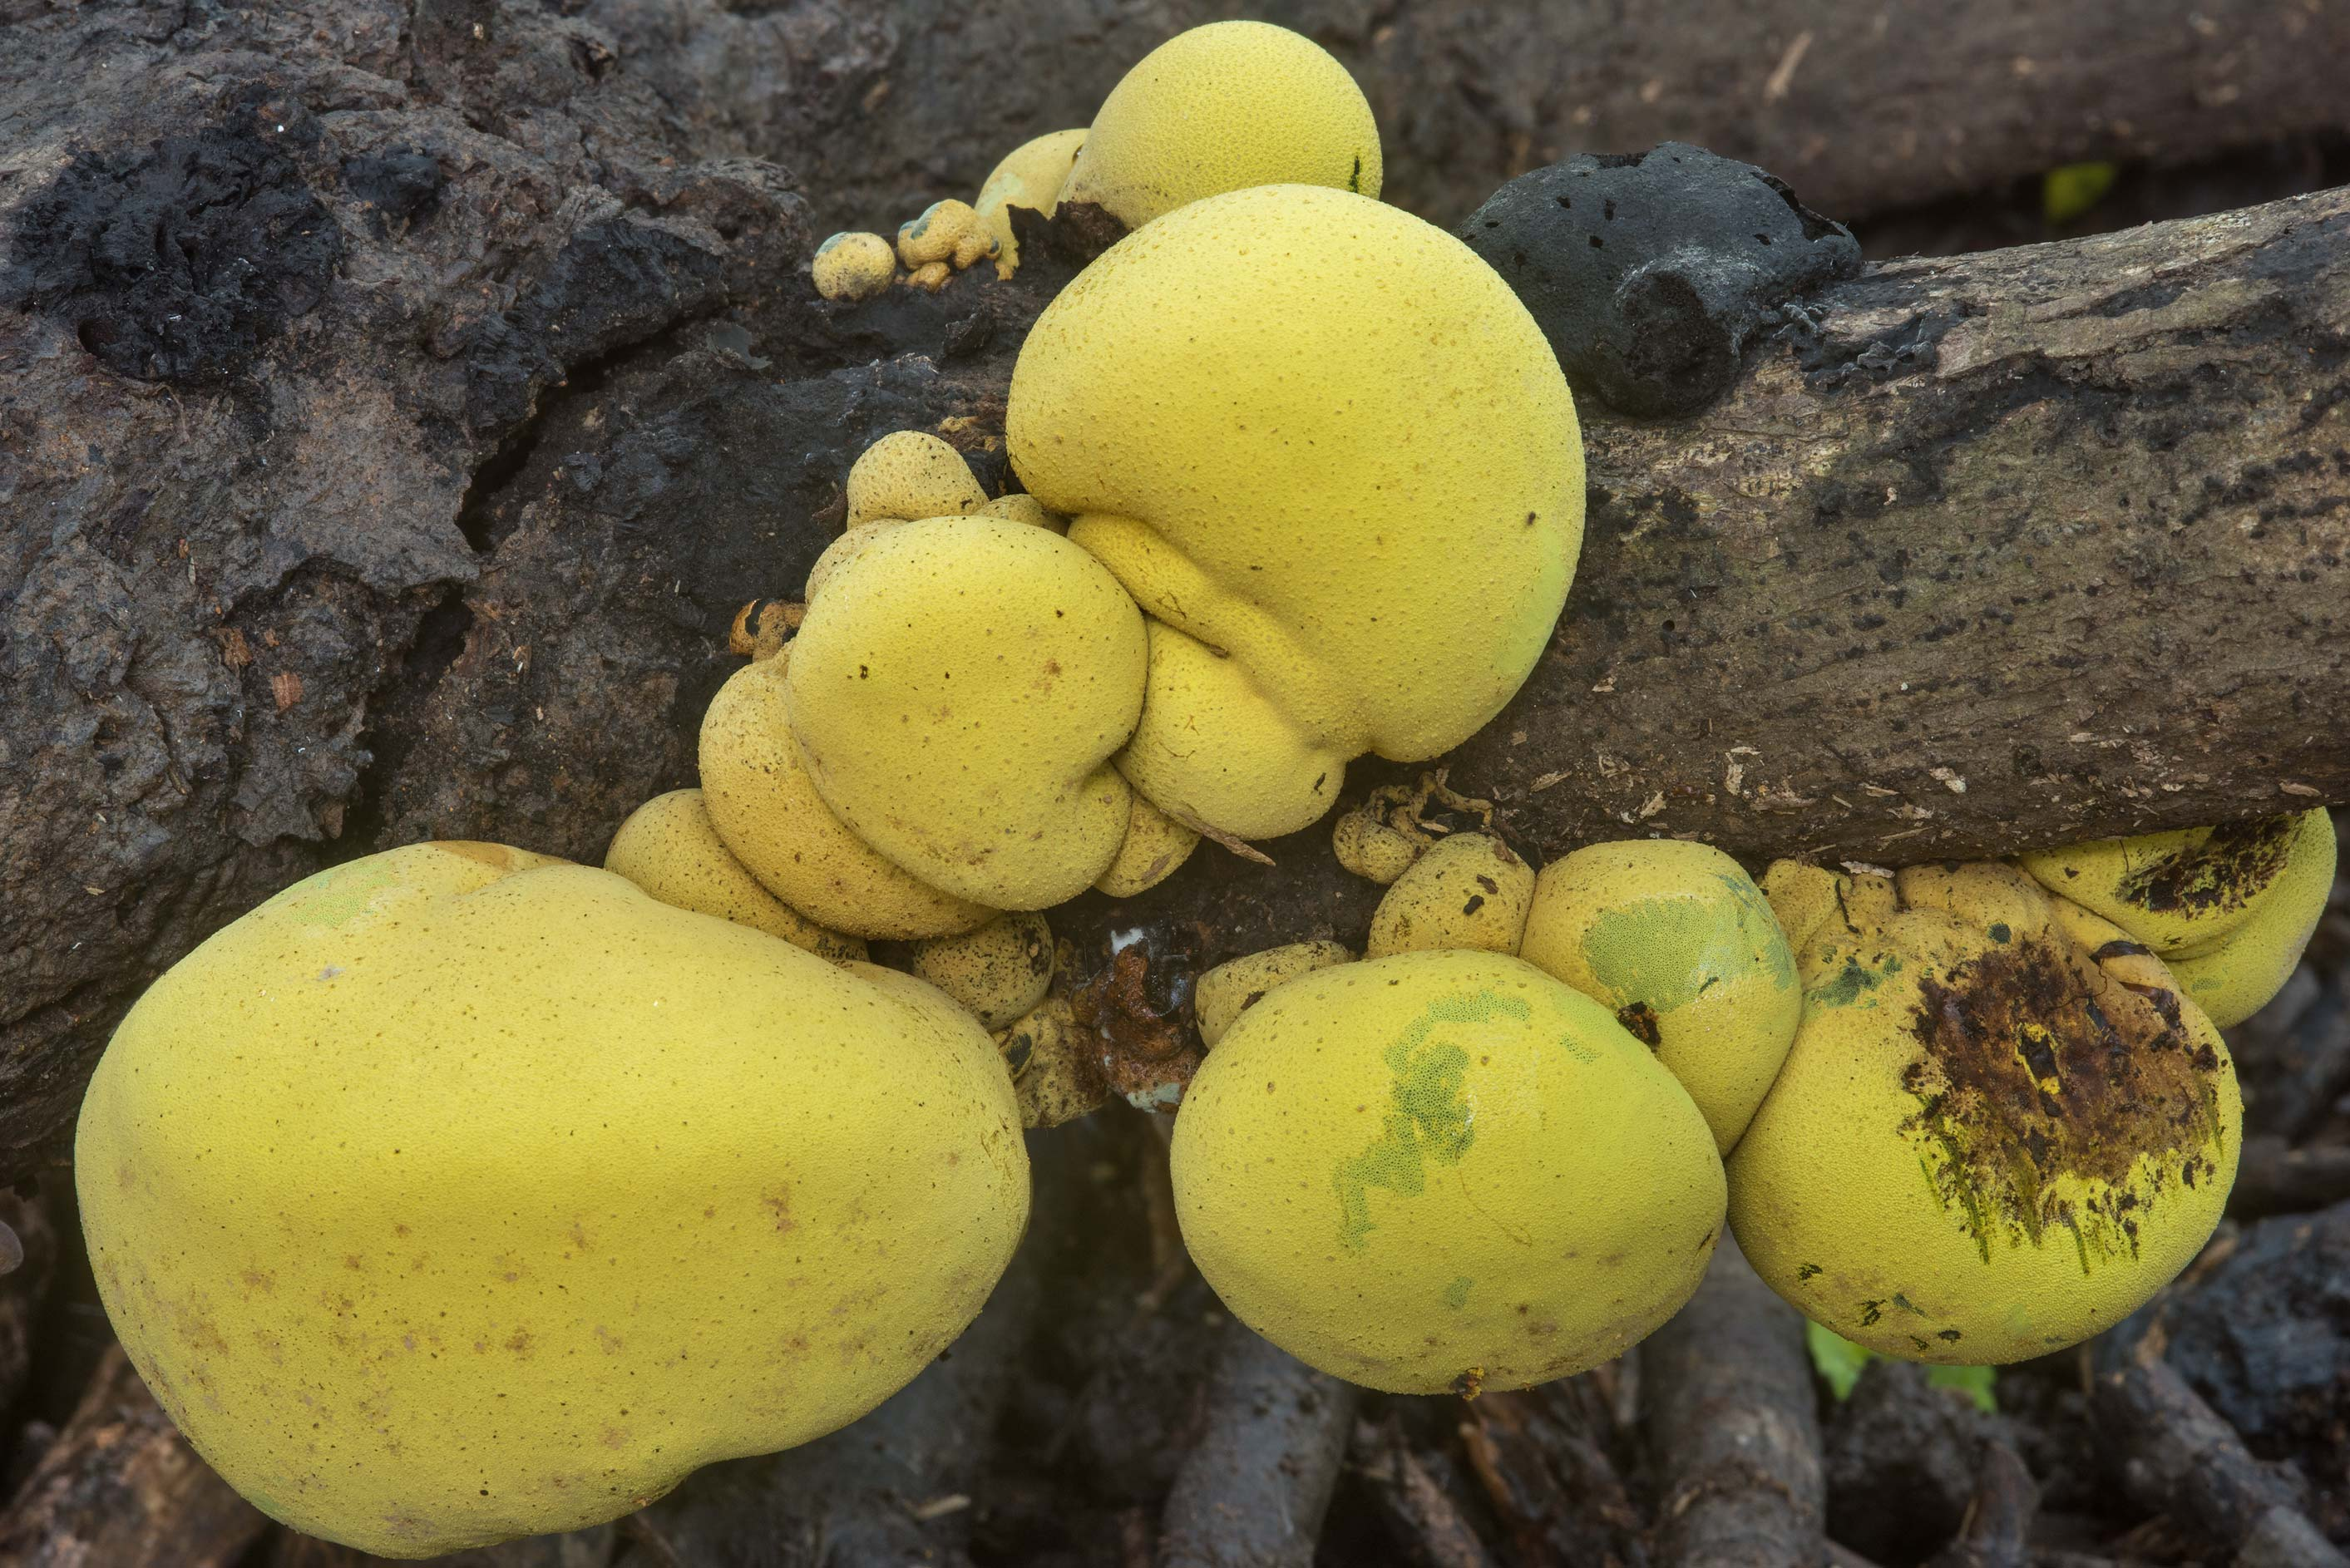 Yellow mushrooms Entonaema liquescens on a log in Lick Creek Park. College Station, Texas